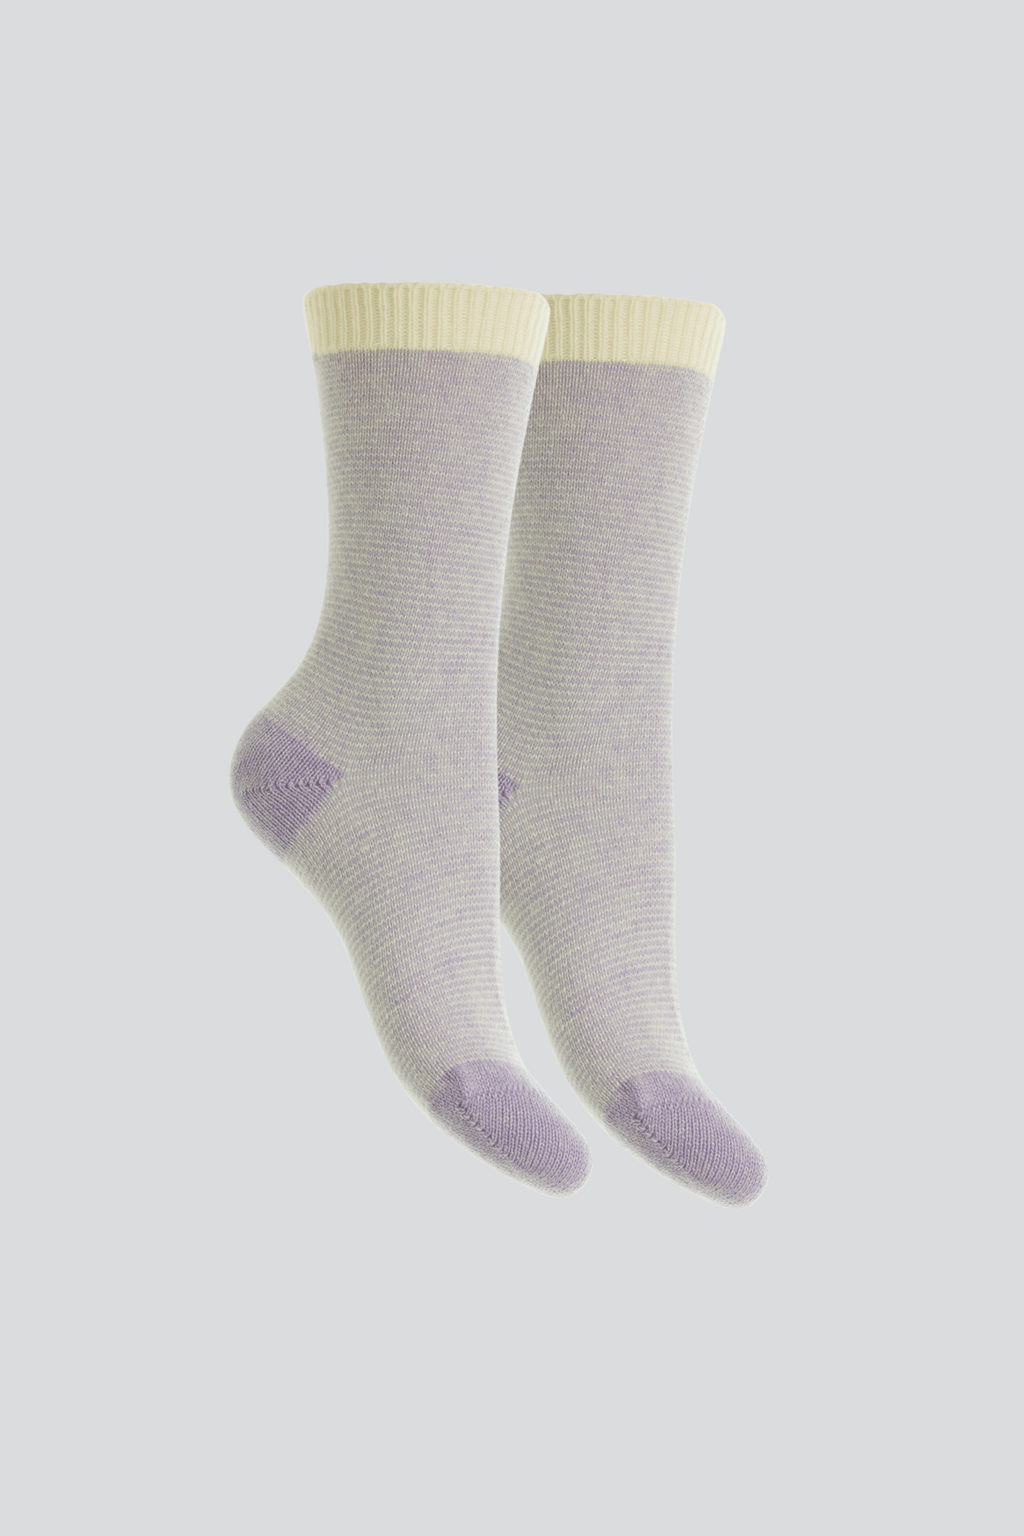 Womens Striped Cashmere Bed Socks | Lilac Striped Cashmere Socks | Quality womens Socks by Lavender Hill Clothing